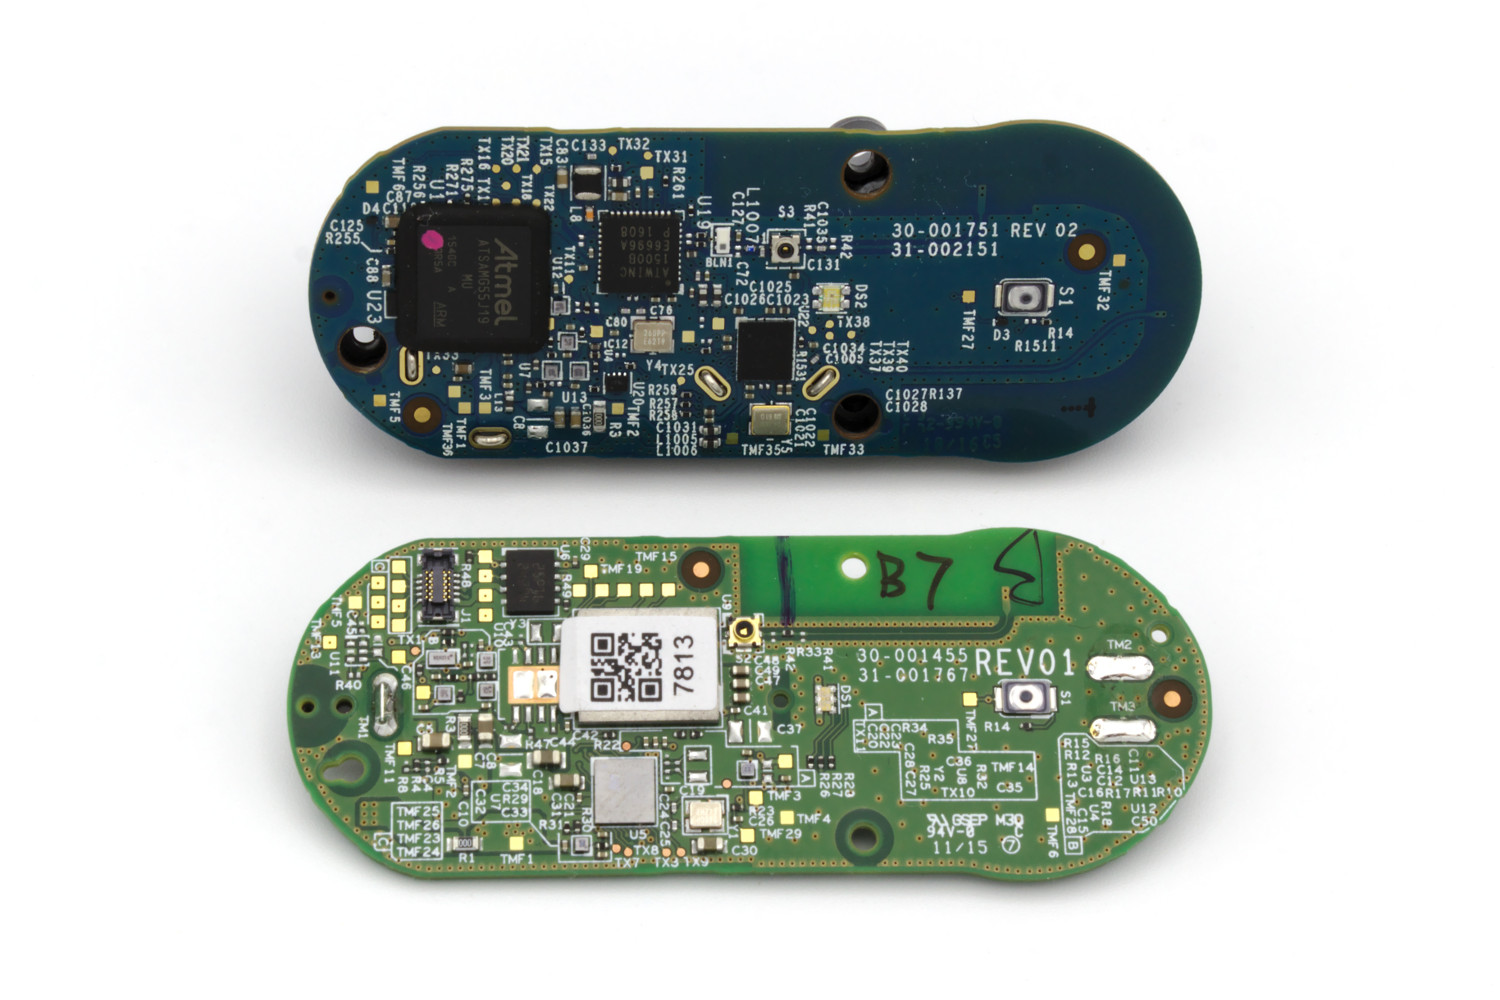 New Amazon Dash Button Teardown Jk29lp Matthew Petroff Brief History Exploded Part Diagrams 28 Parts 2 Pages Disassembly Comparison Of Top To Old Bottom